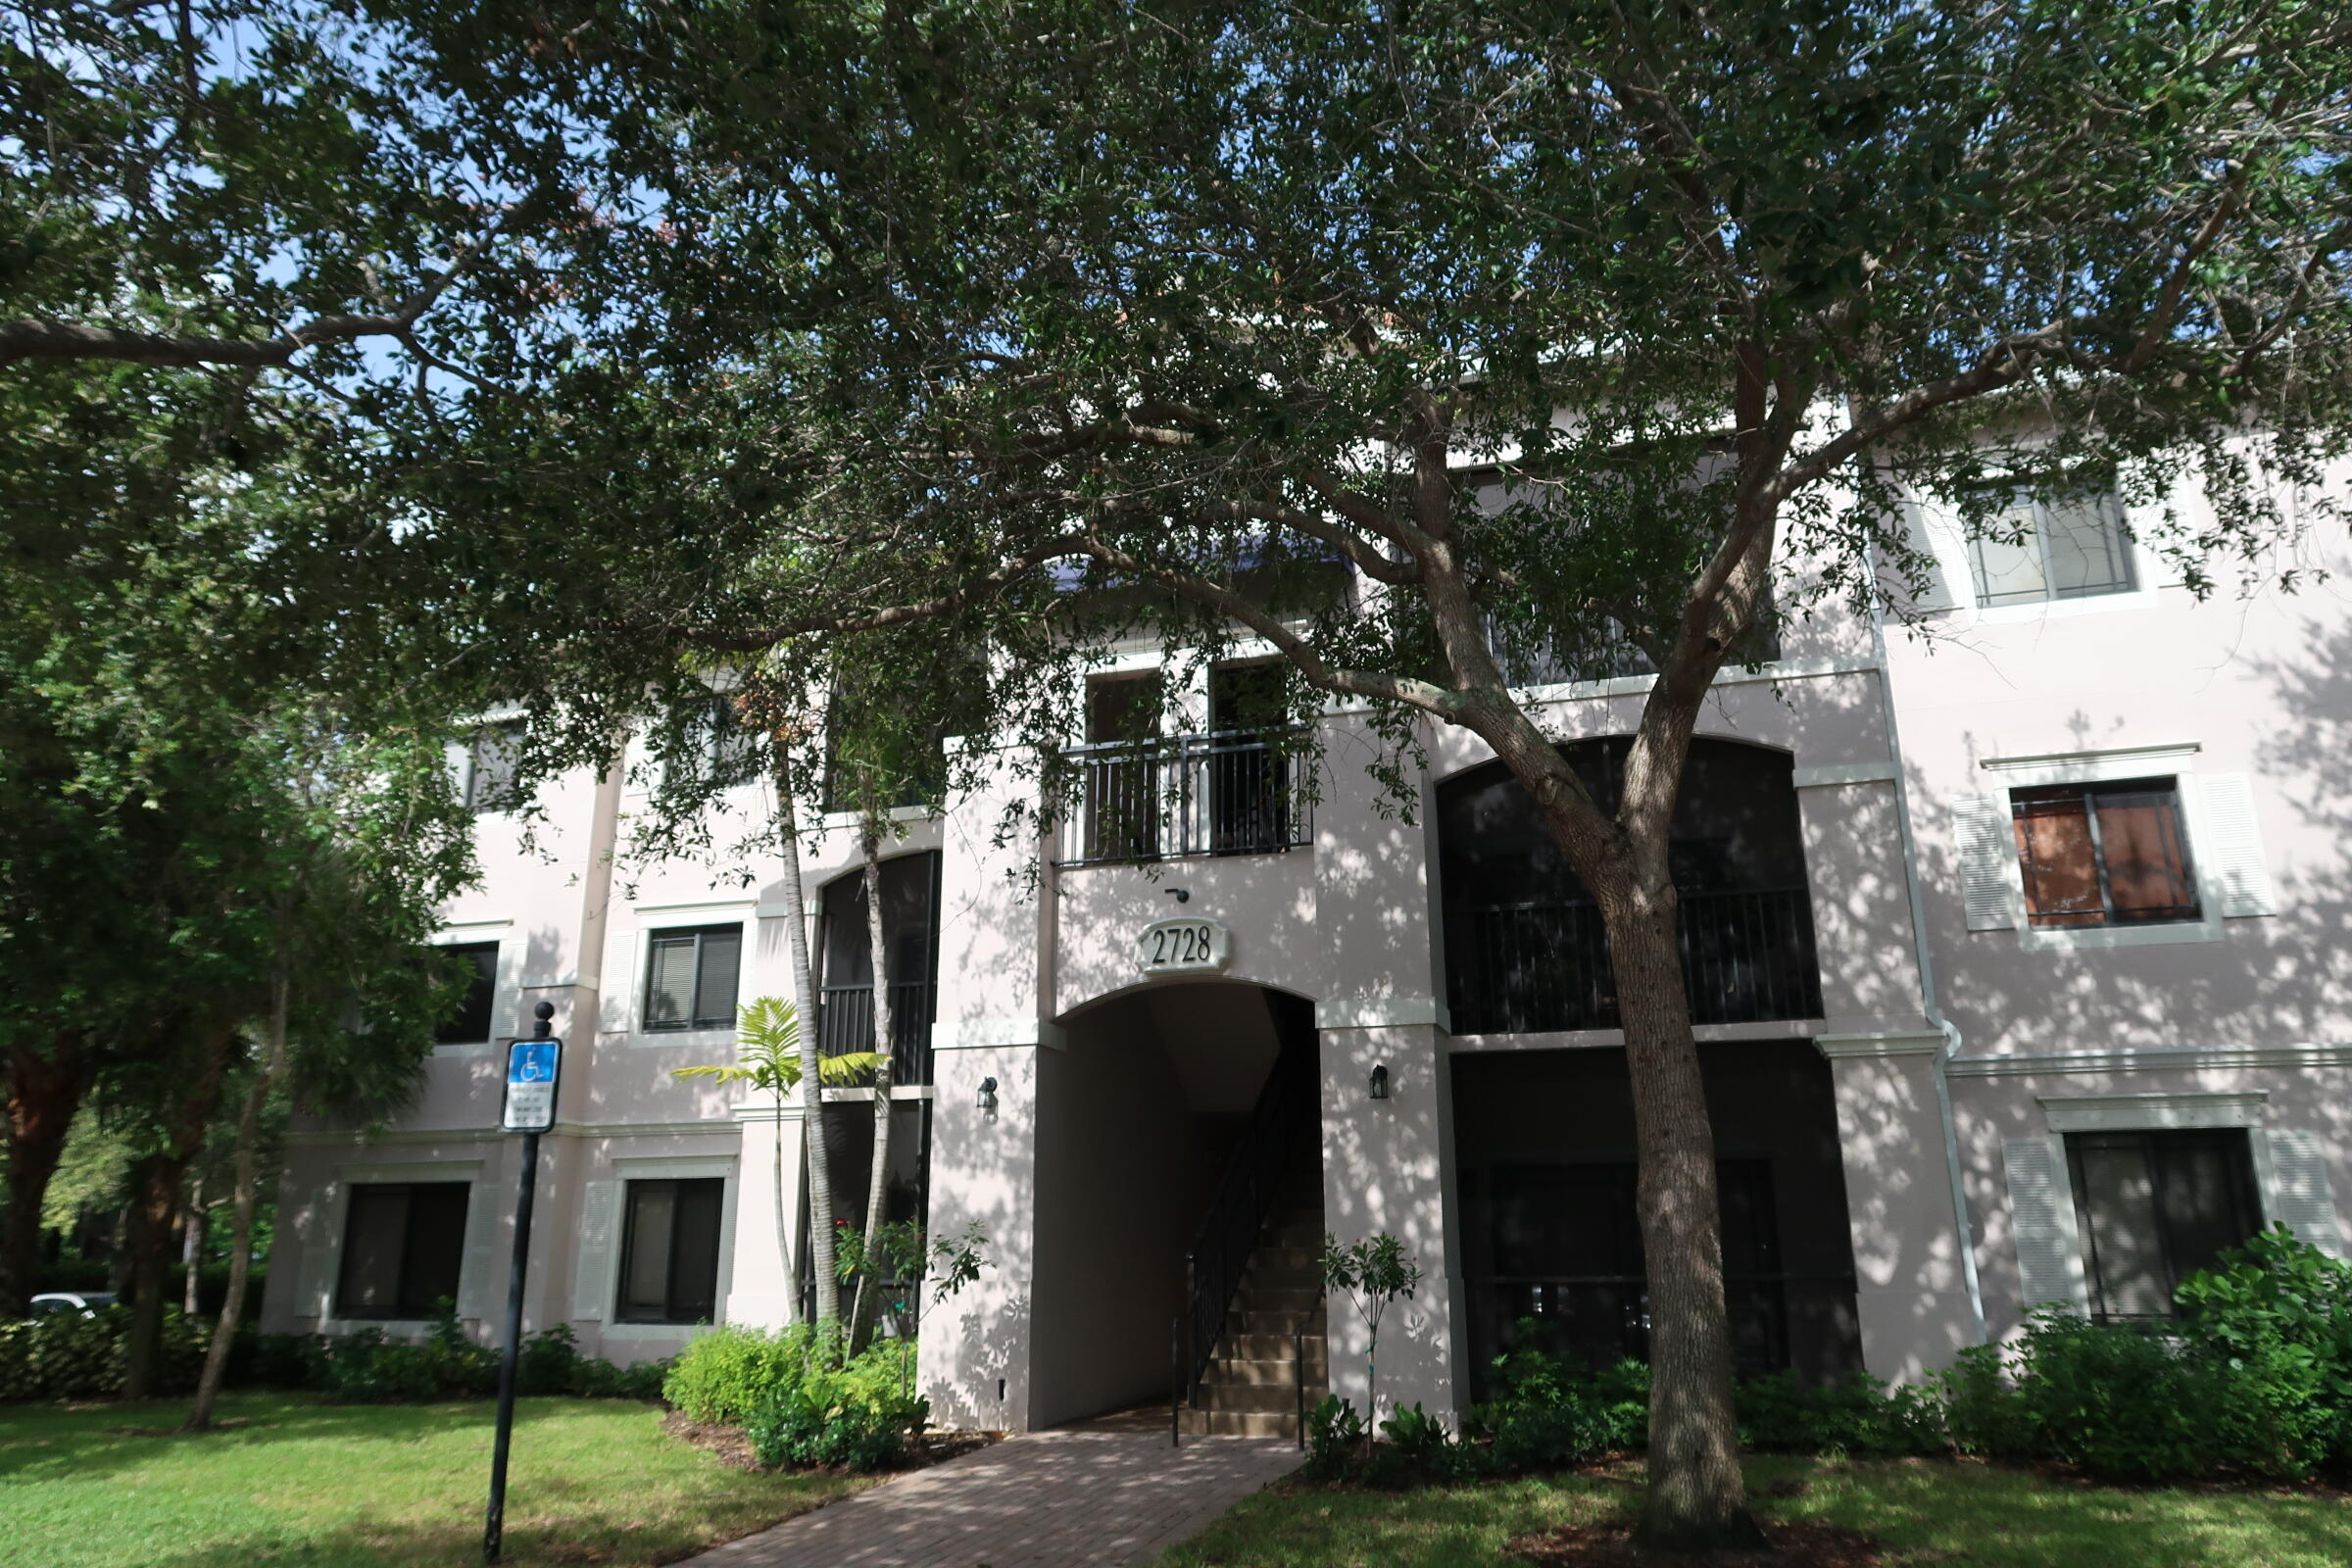 San Matera At The Gardens Beautiful 2 Bedroom 1 Bath. Brand New Luxury Vinyl Flooring Throughout. Light And Bright. Lots Of Storage. Large Screened In Patio. All Resort Style Amenities Including Pool, Spa, Steam Room And Fitness Center. Just Minutes from The Gardens Mall And Downtown At The Gardens.